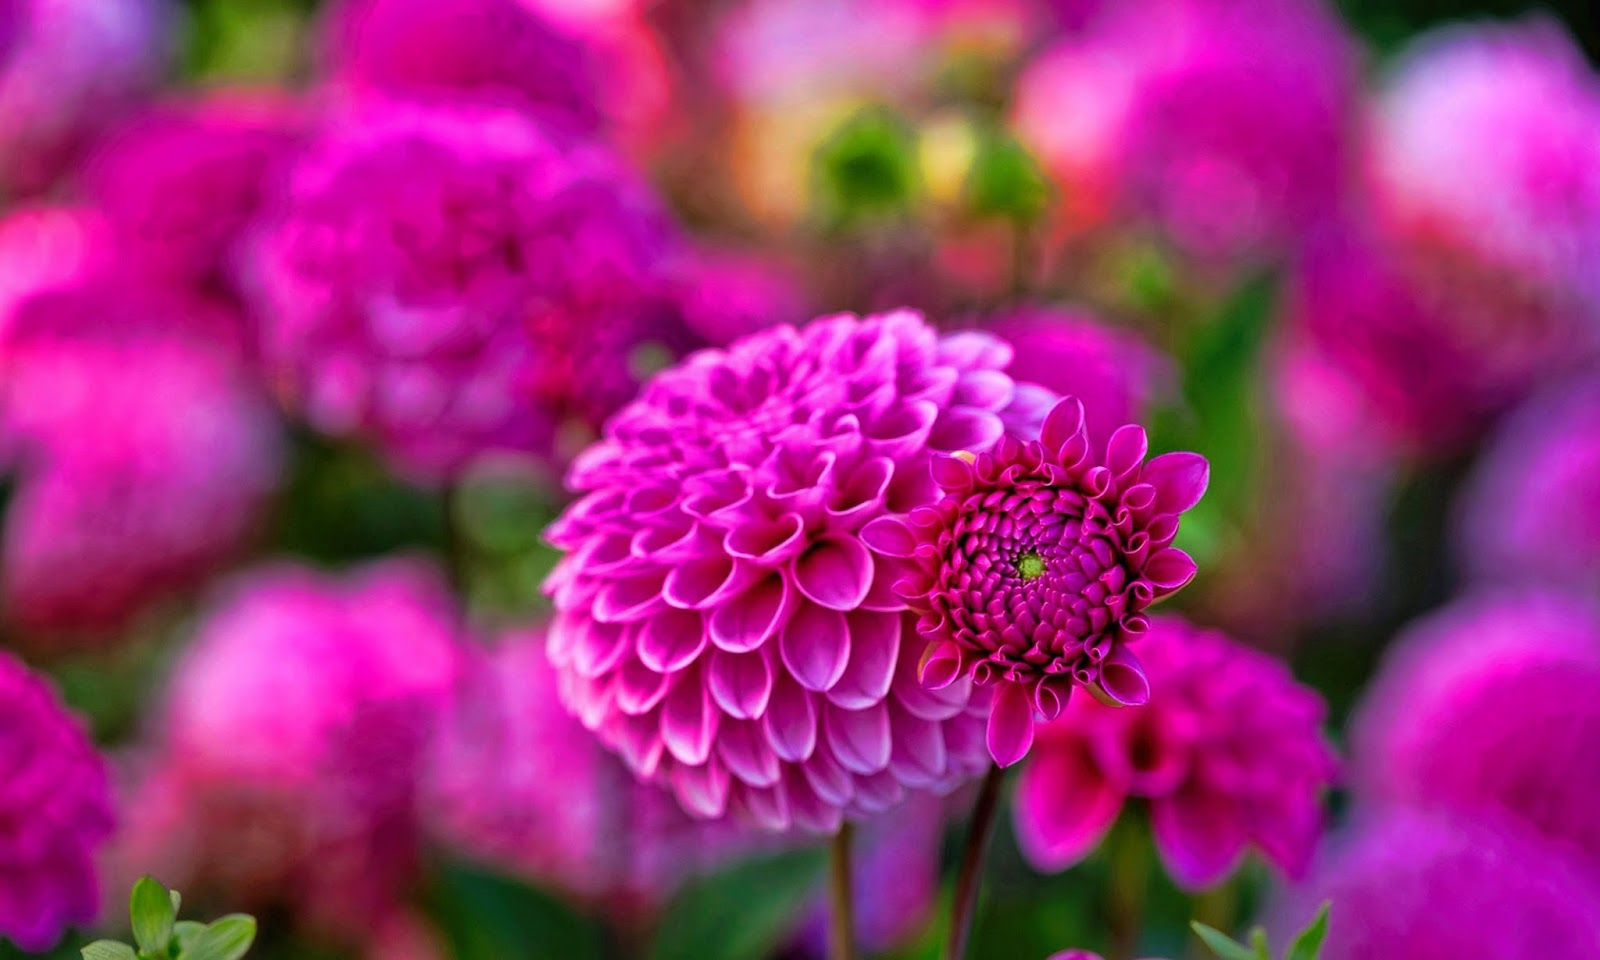 Dahlia Flower HD Wallpapers